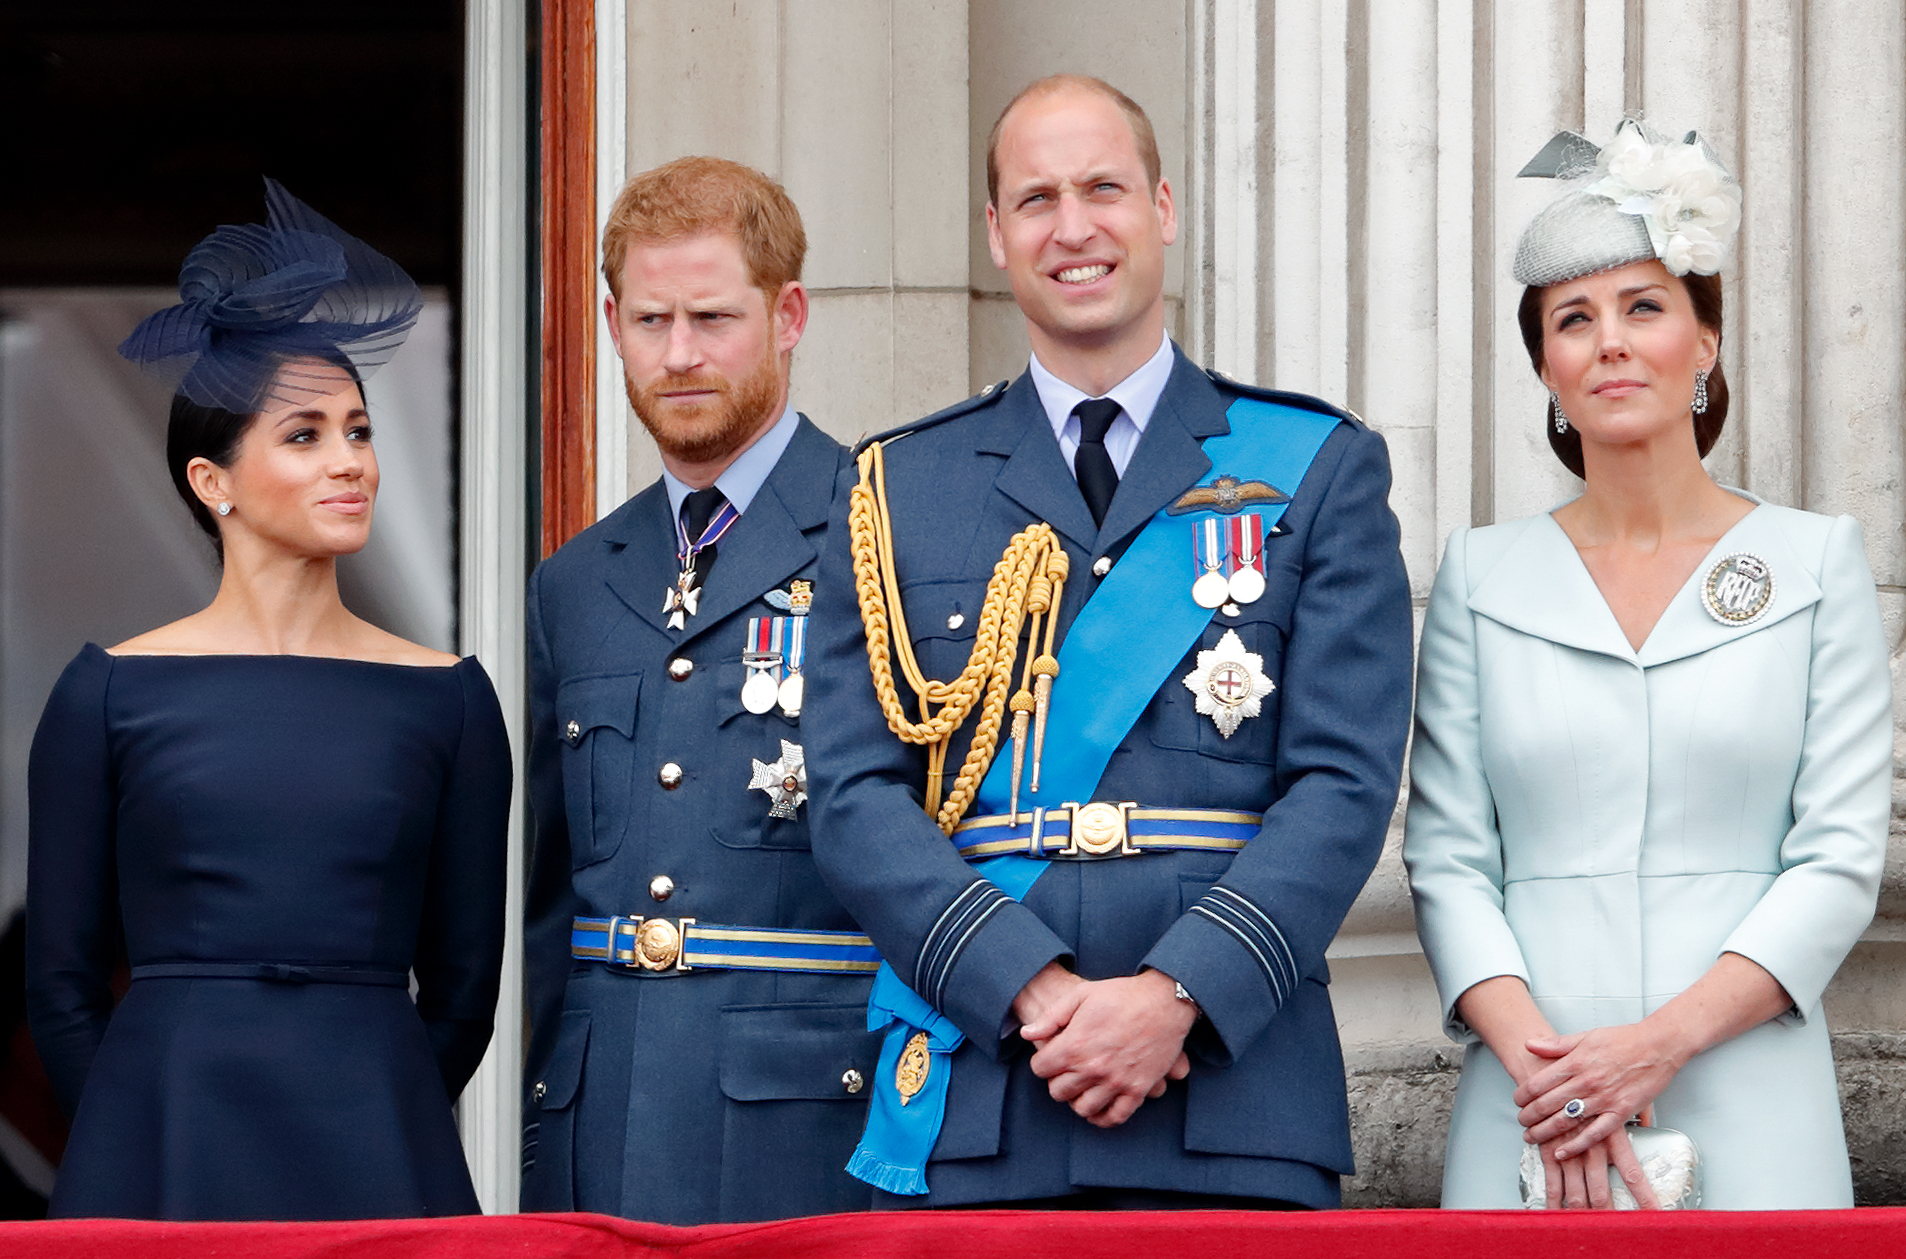 eghan, Duchess of Sussex, Prince Harry, Duke of Sussex, Prince William, Duke of Cambridge and Catherine, Duchess of Cambridge